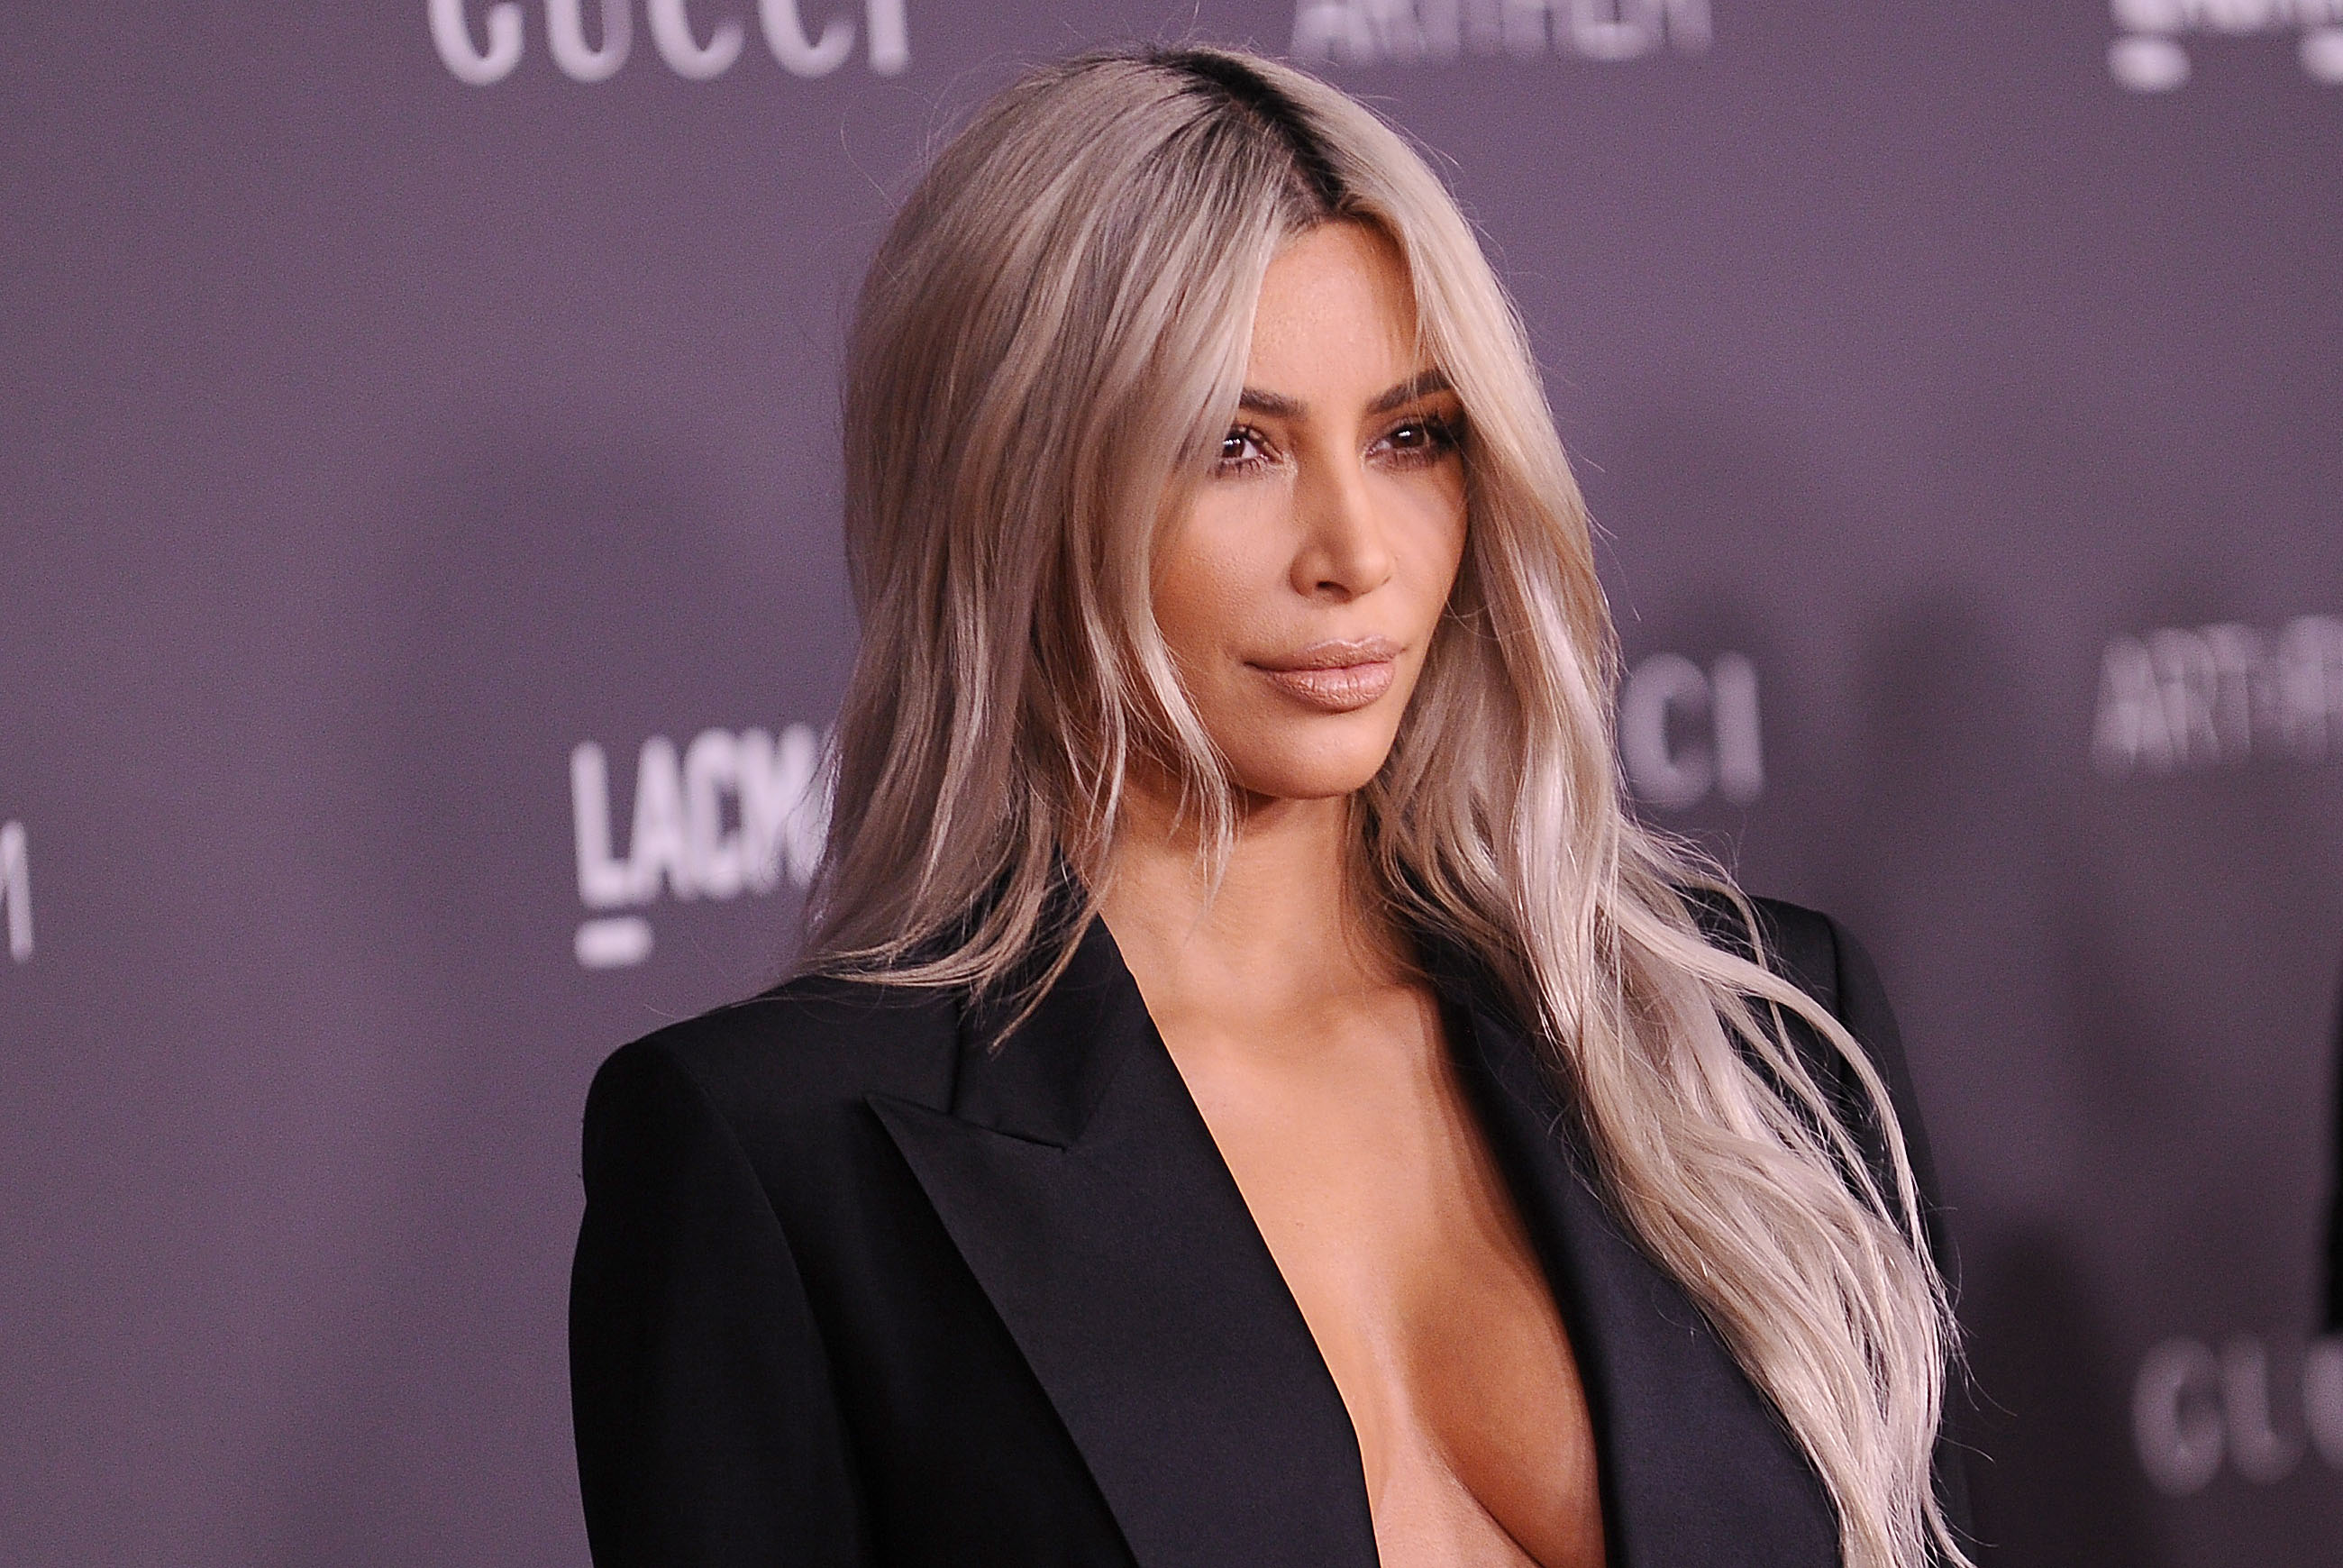 Kim Kardashian revealed each of her siblings' worst traits, and ouch